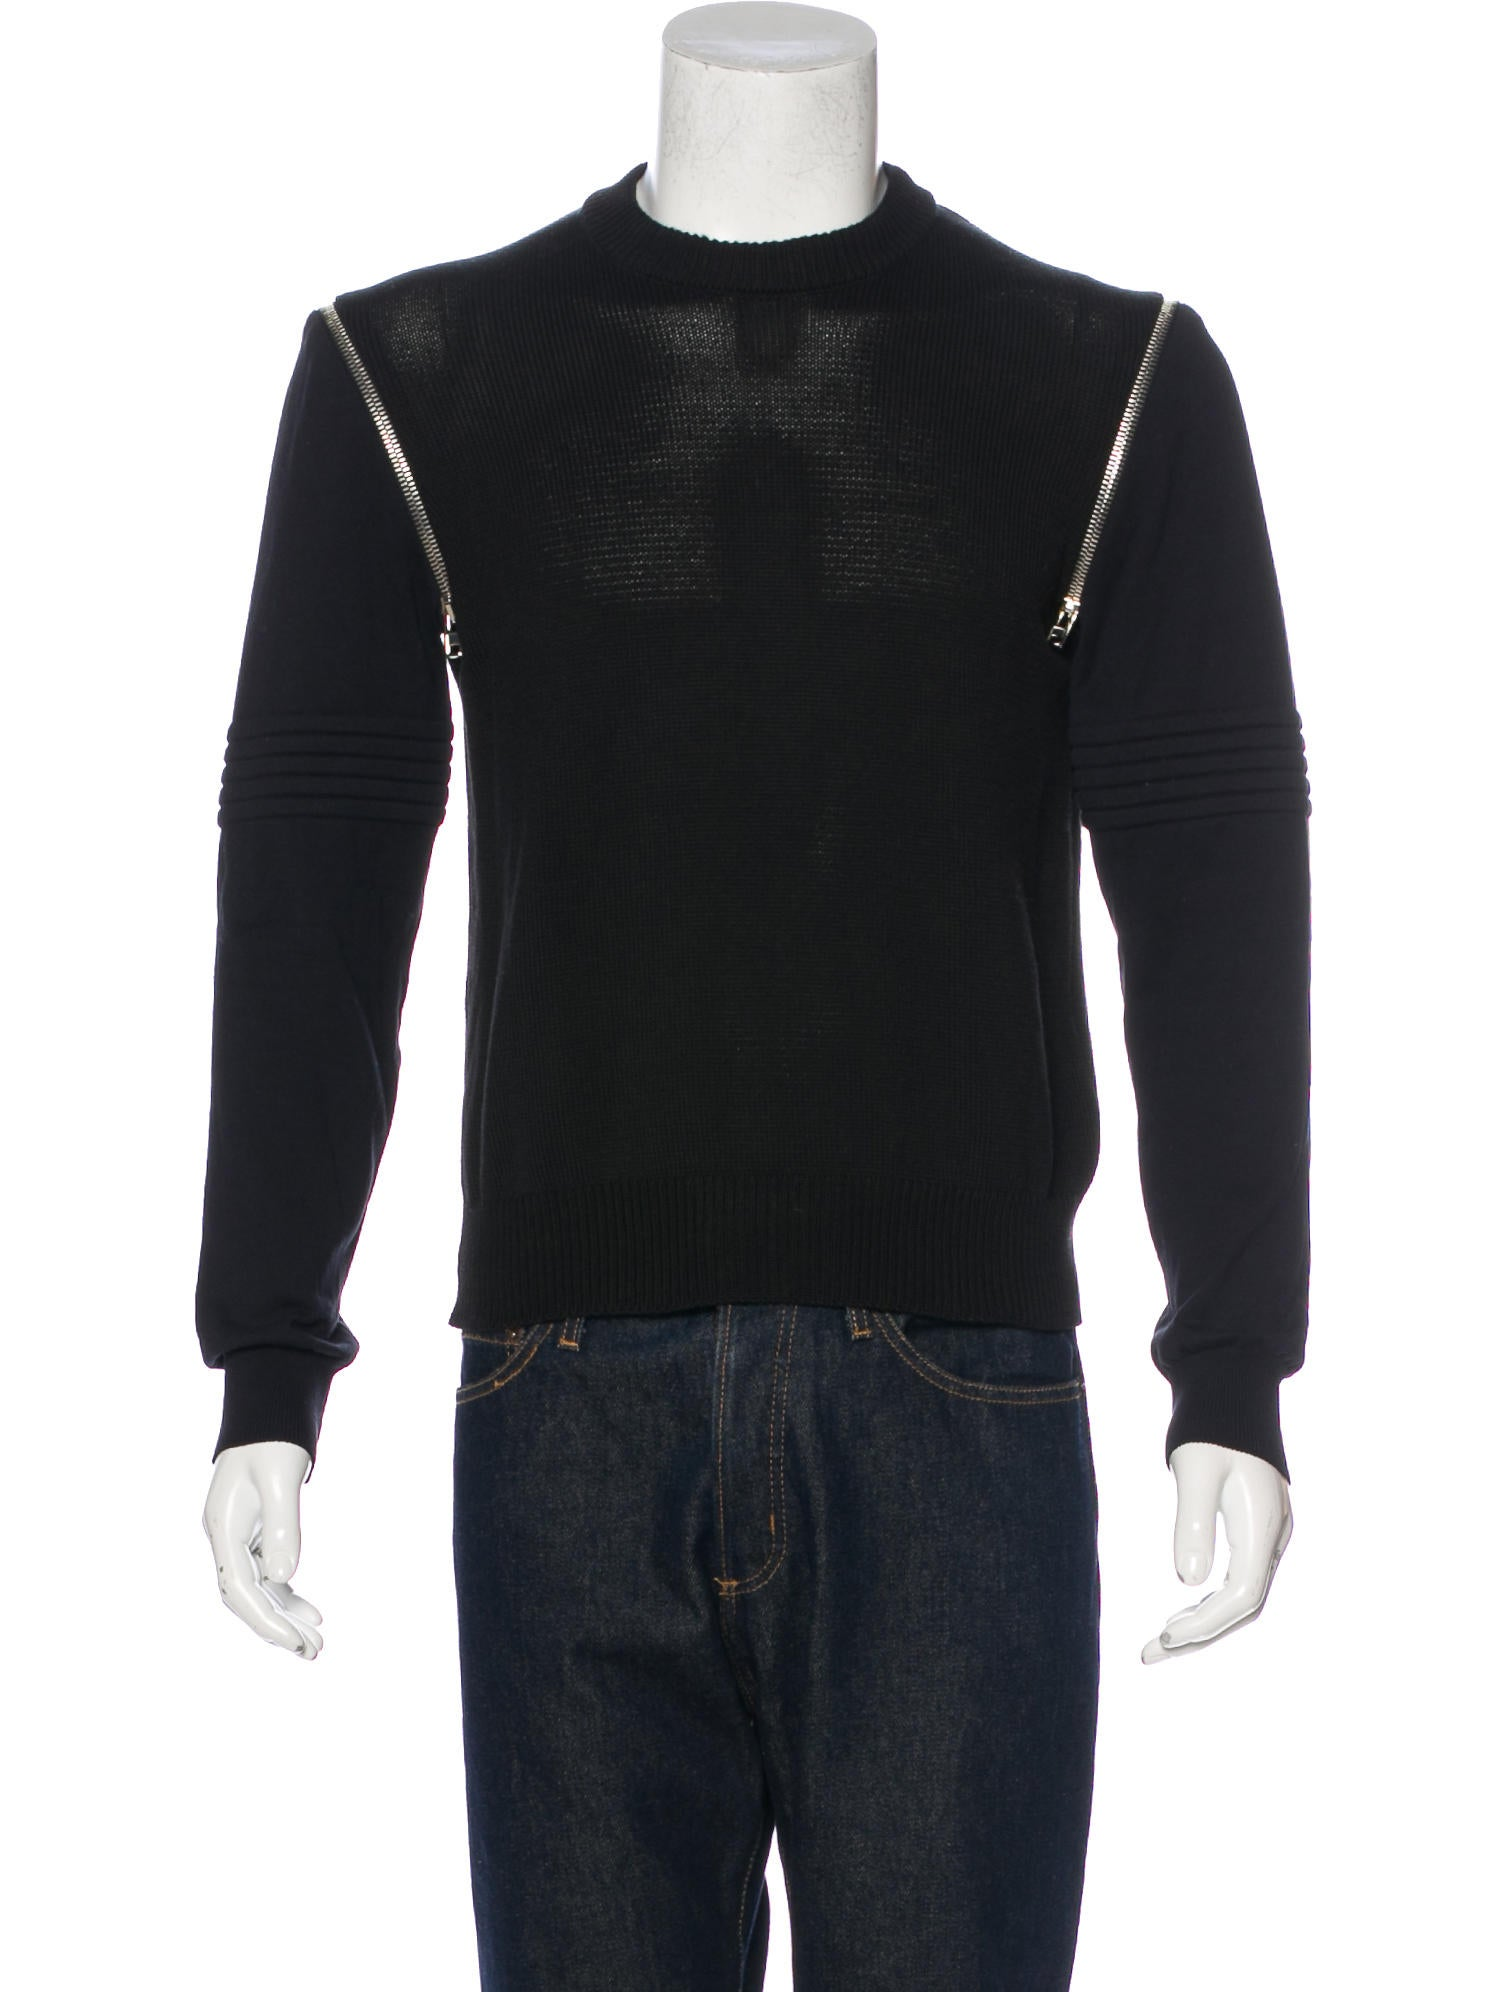 givenchy crew neck sweater clothing giv43995 the realreal. Black Bedroom Furniture Sets. Home Design Ideas